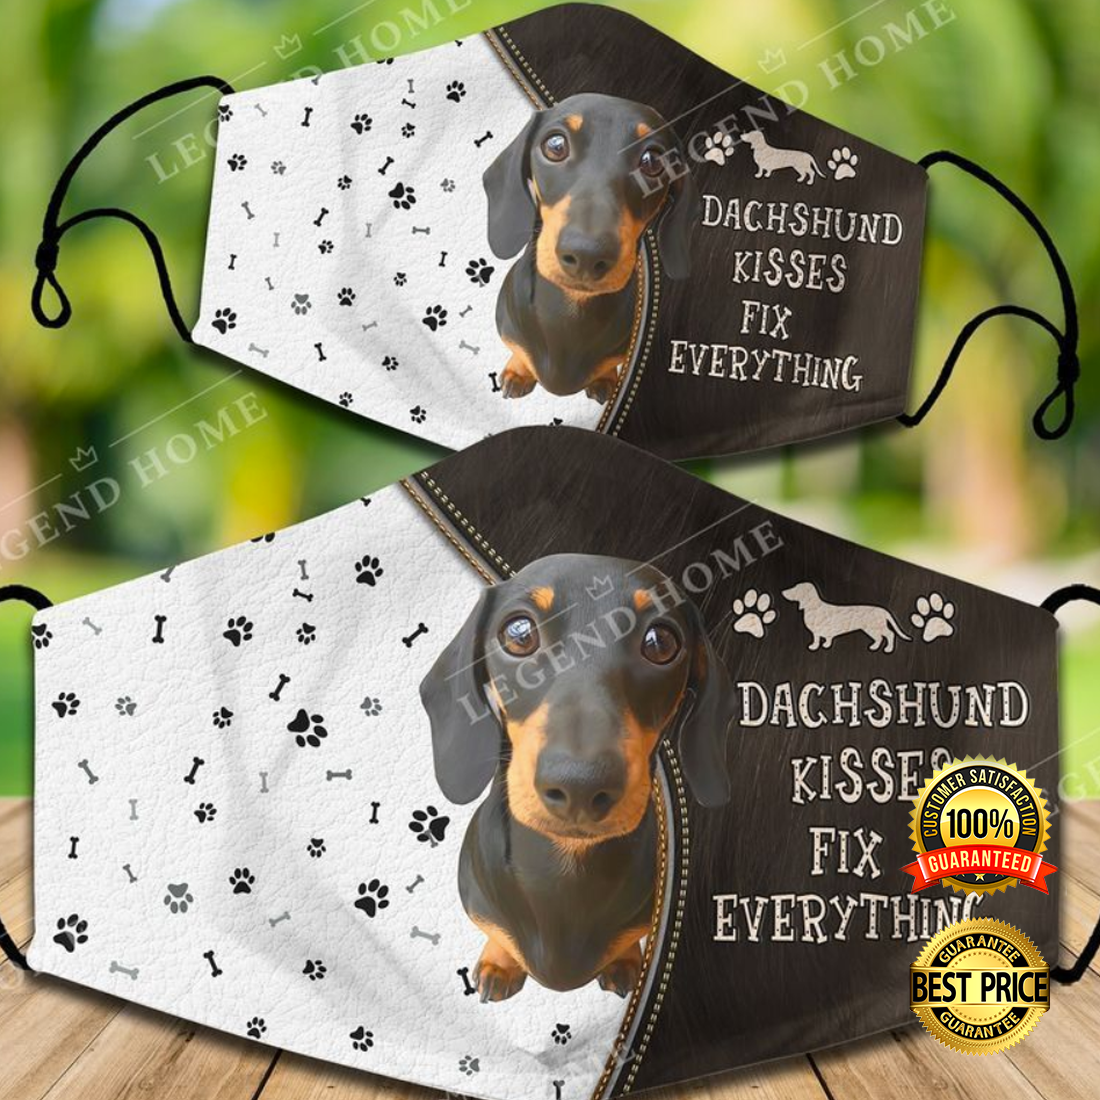 DACHSHUND KISSES FIX EVERYTHING FACE MASK 5